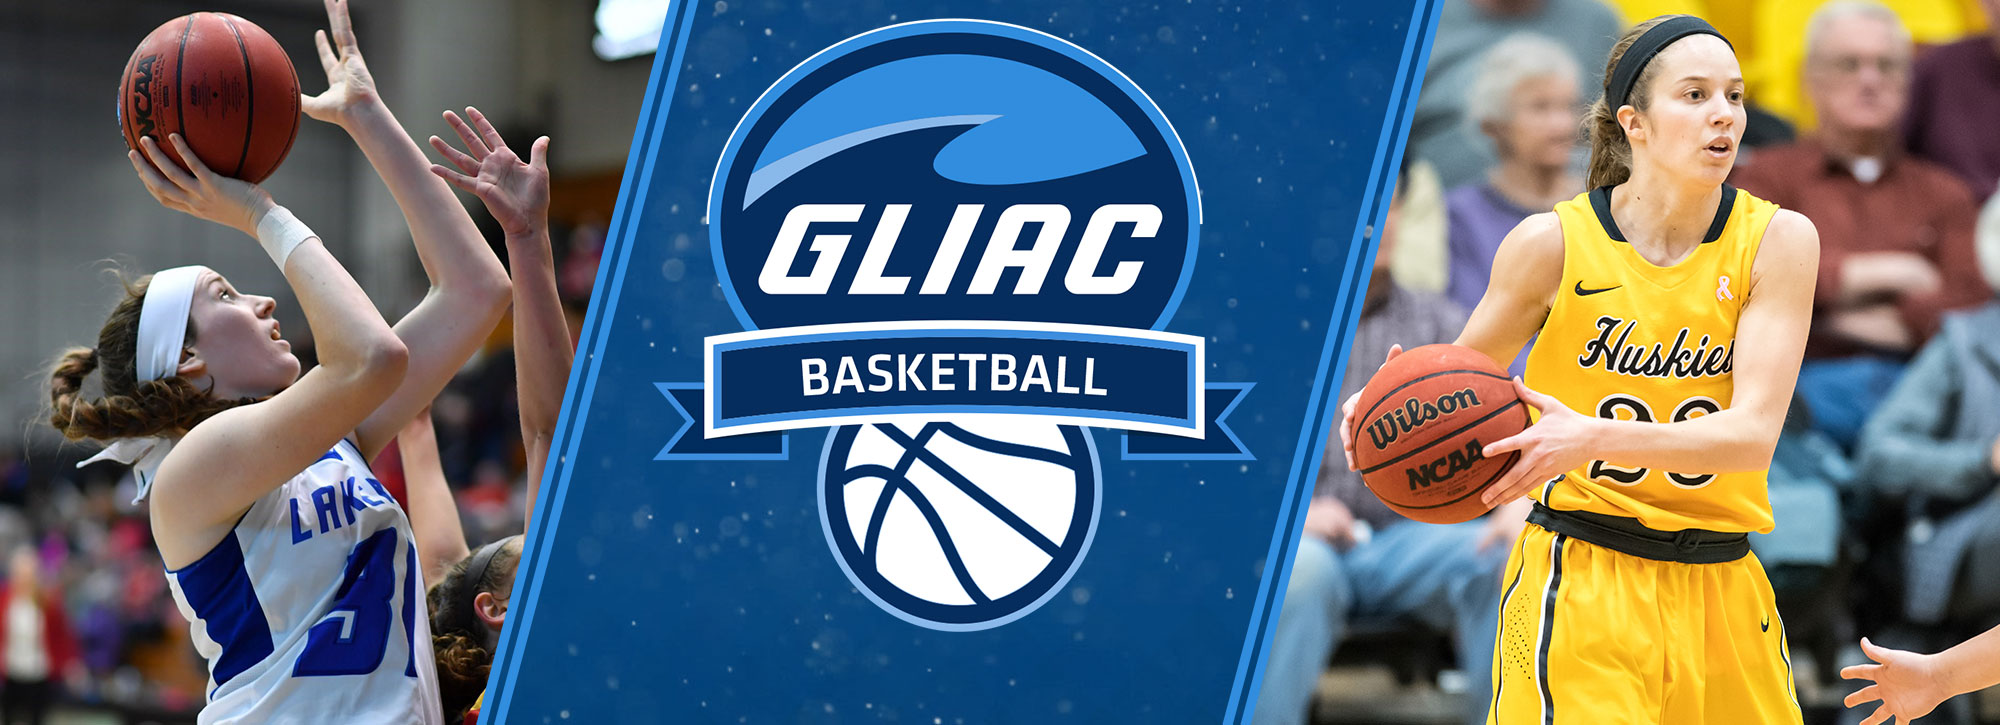 Grand Valley State's Boensch, Michigan Tech's McGirk Earn GLIAC Women's Hoops Weekly Honors